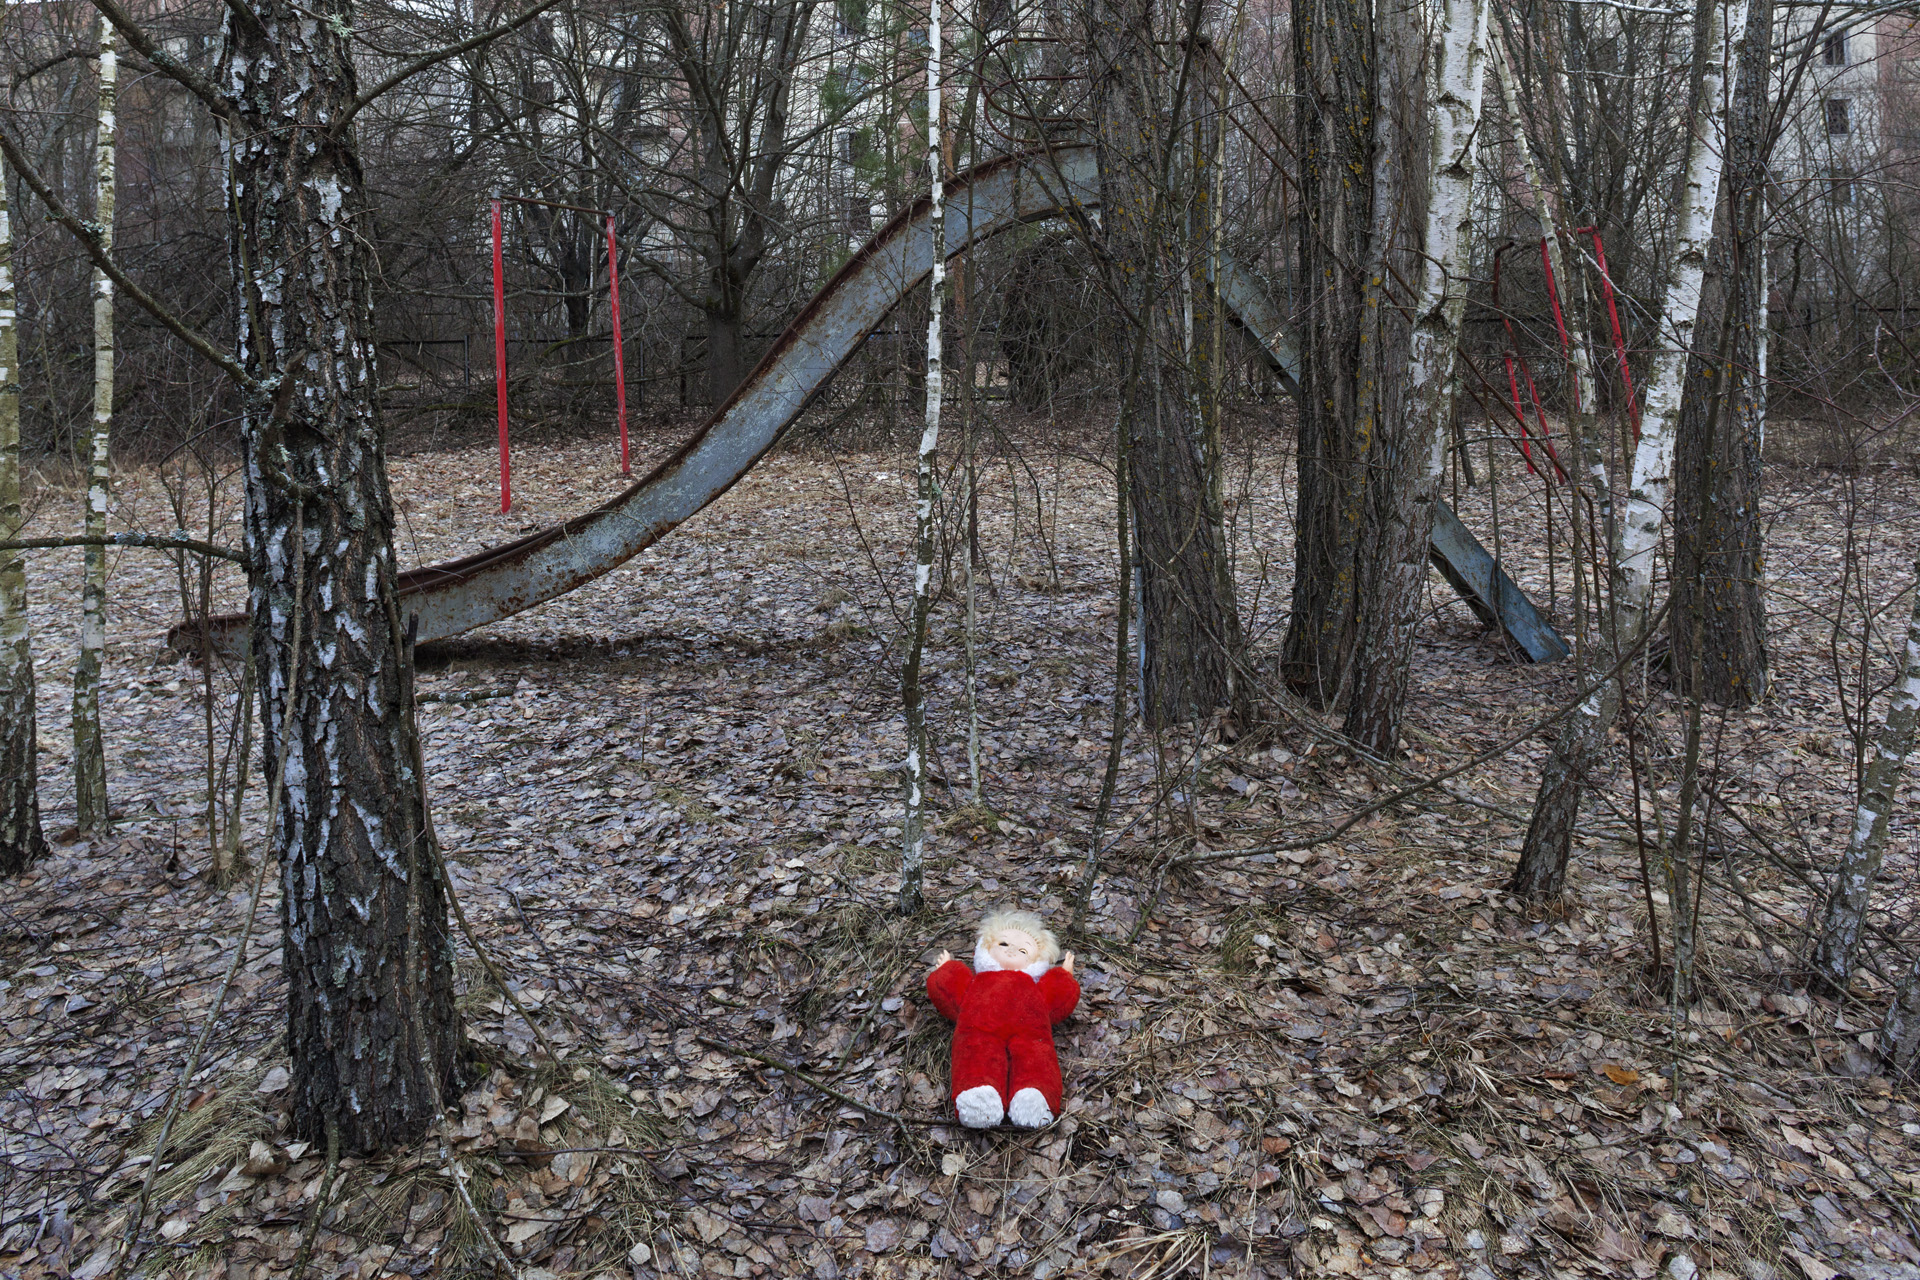 The abandoned, lonely doll, neatly arranged, has become a standard tourist motif and an obvious indication that visitors were here.  Pripyat, Ukraine